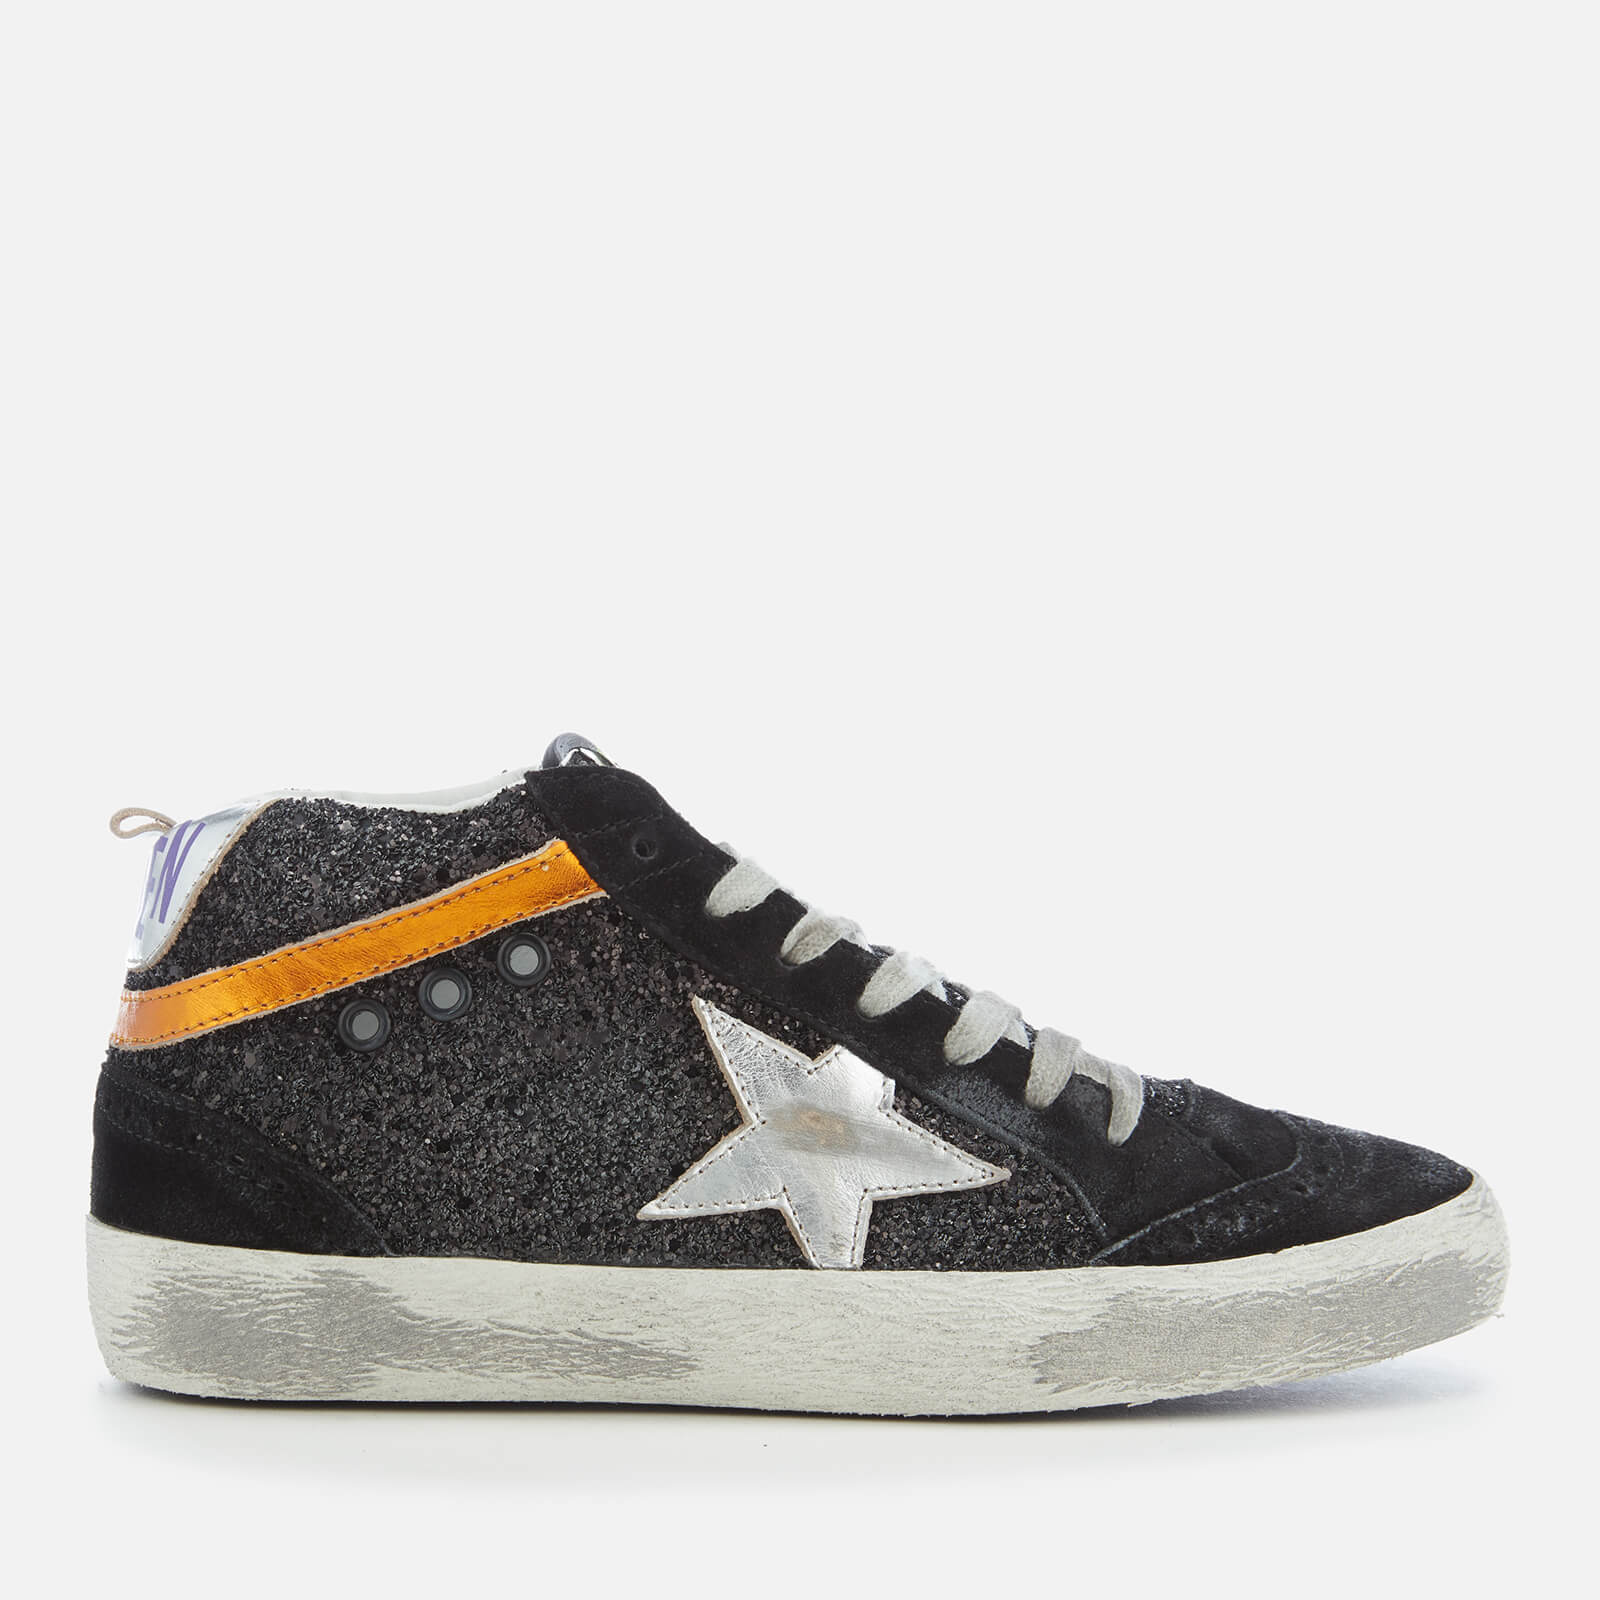 f0fad3f787415 Golden Goose Deluxe Brand Women s Mid Star Trainers - Black Glitter Silver  Star - Free UK Delivery over £50